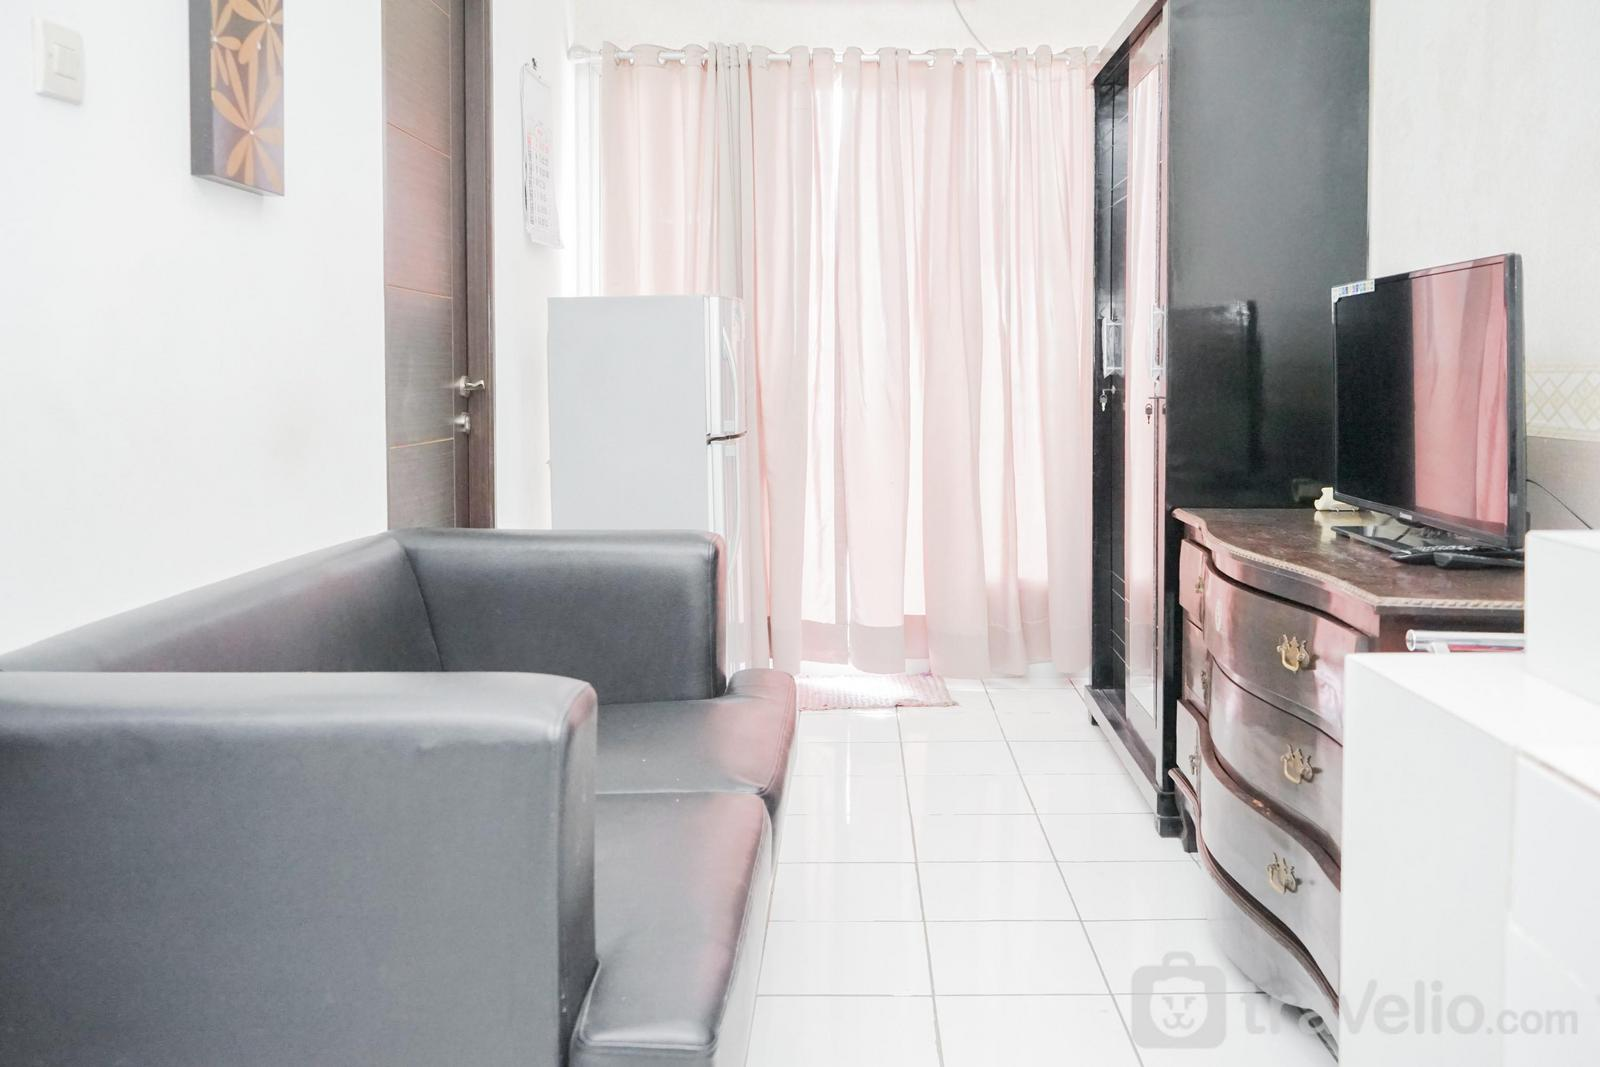 Apartemen Sky View - Delightful 2BR at Sky View Apartment Serpong near BSD By Travelio